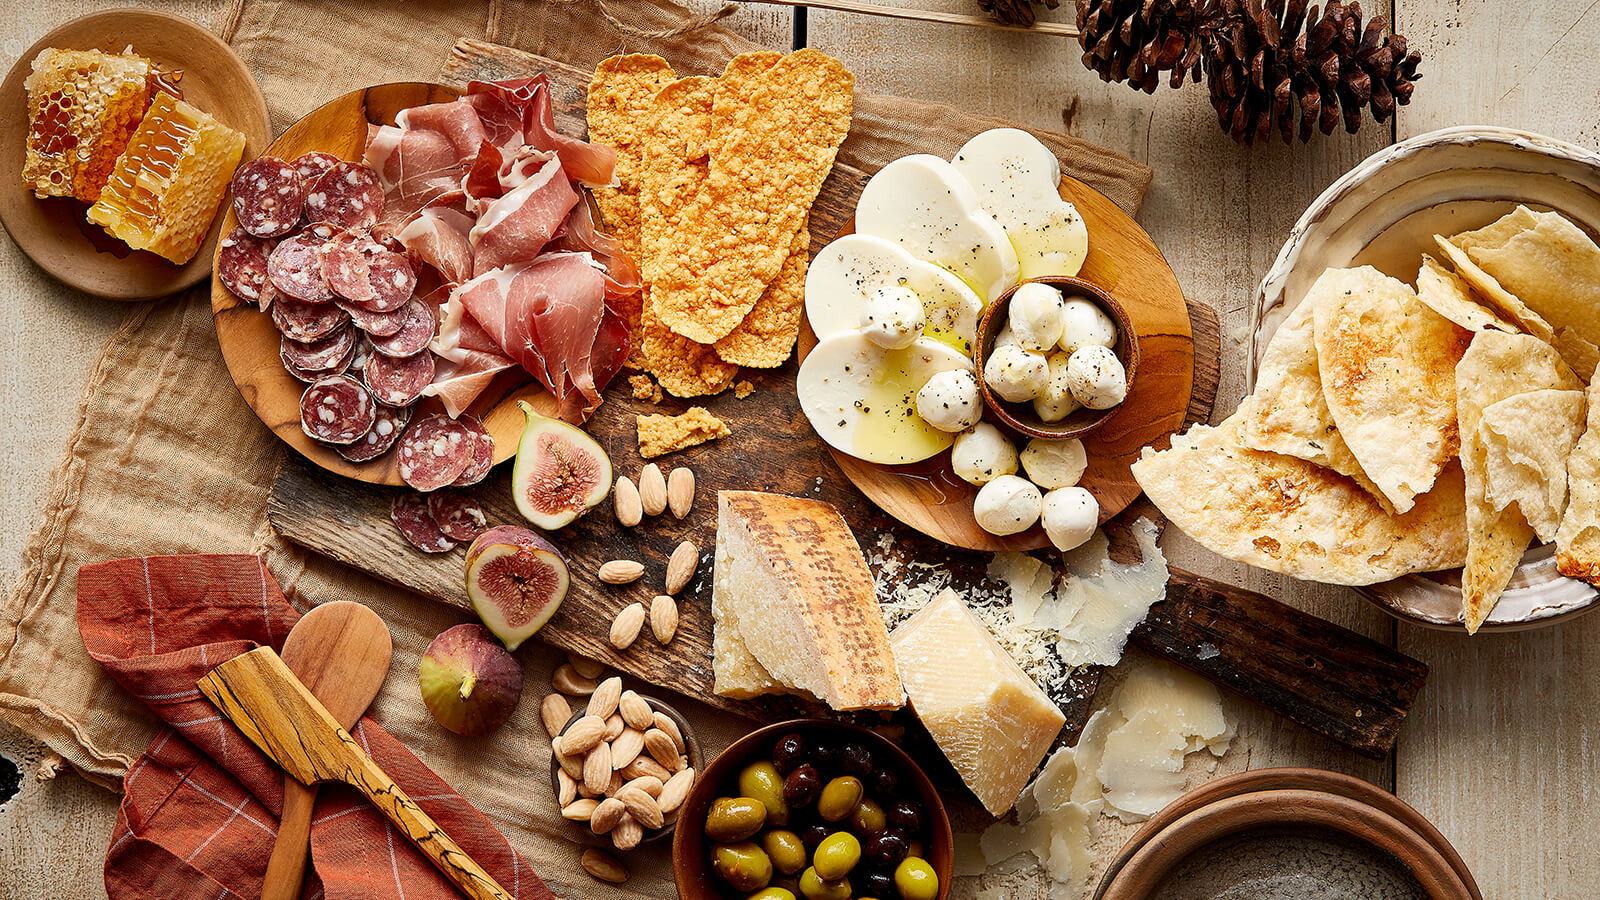 Imported Charcuterie with cheese, nuts, and honey